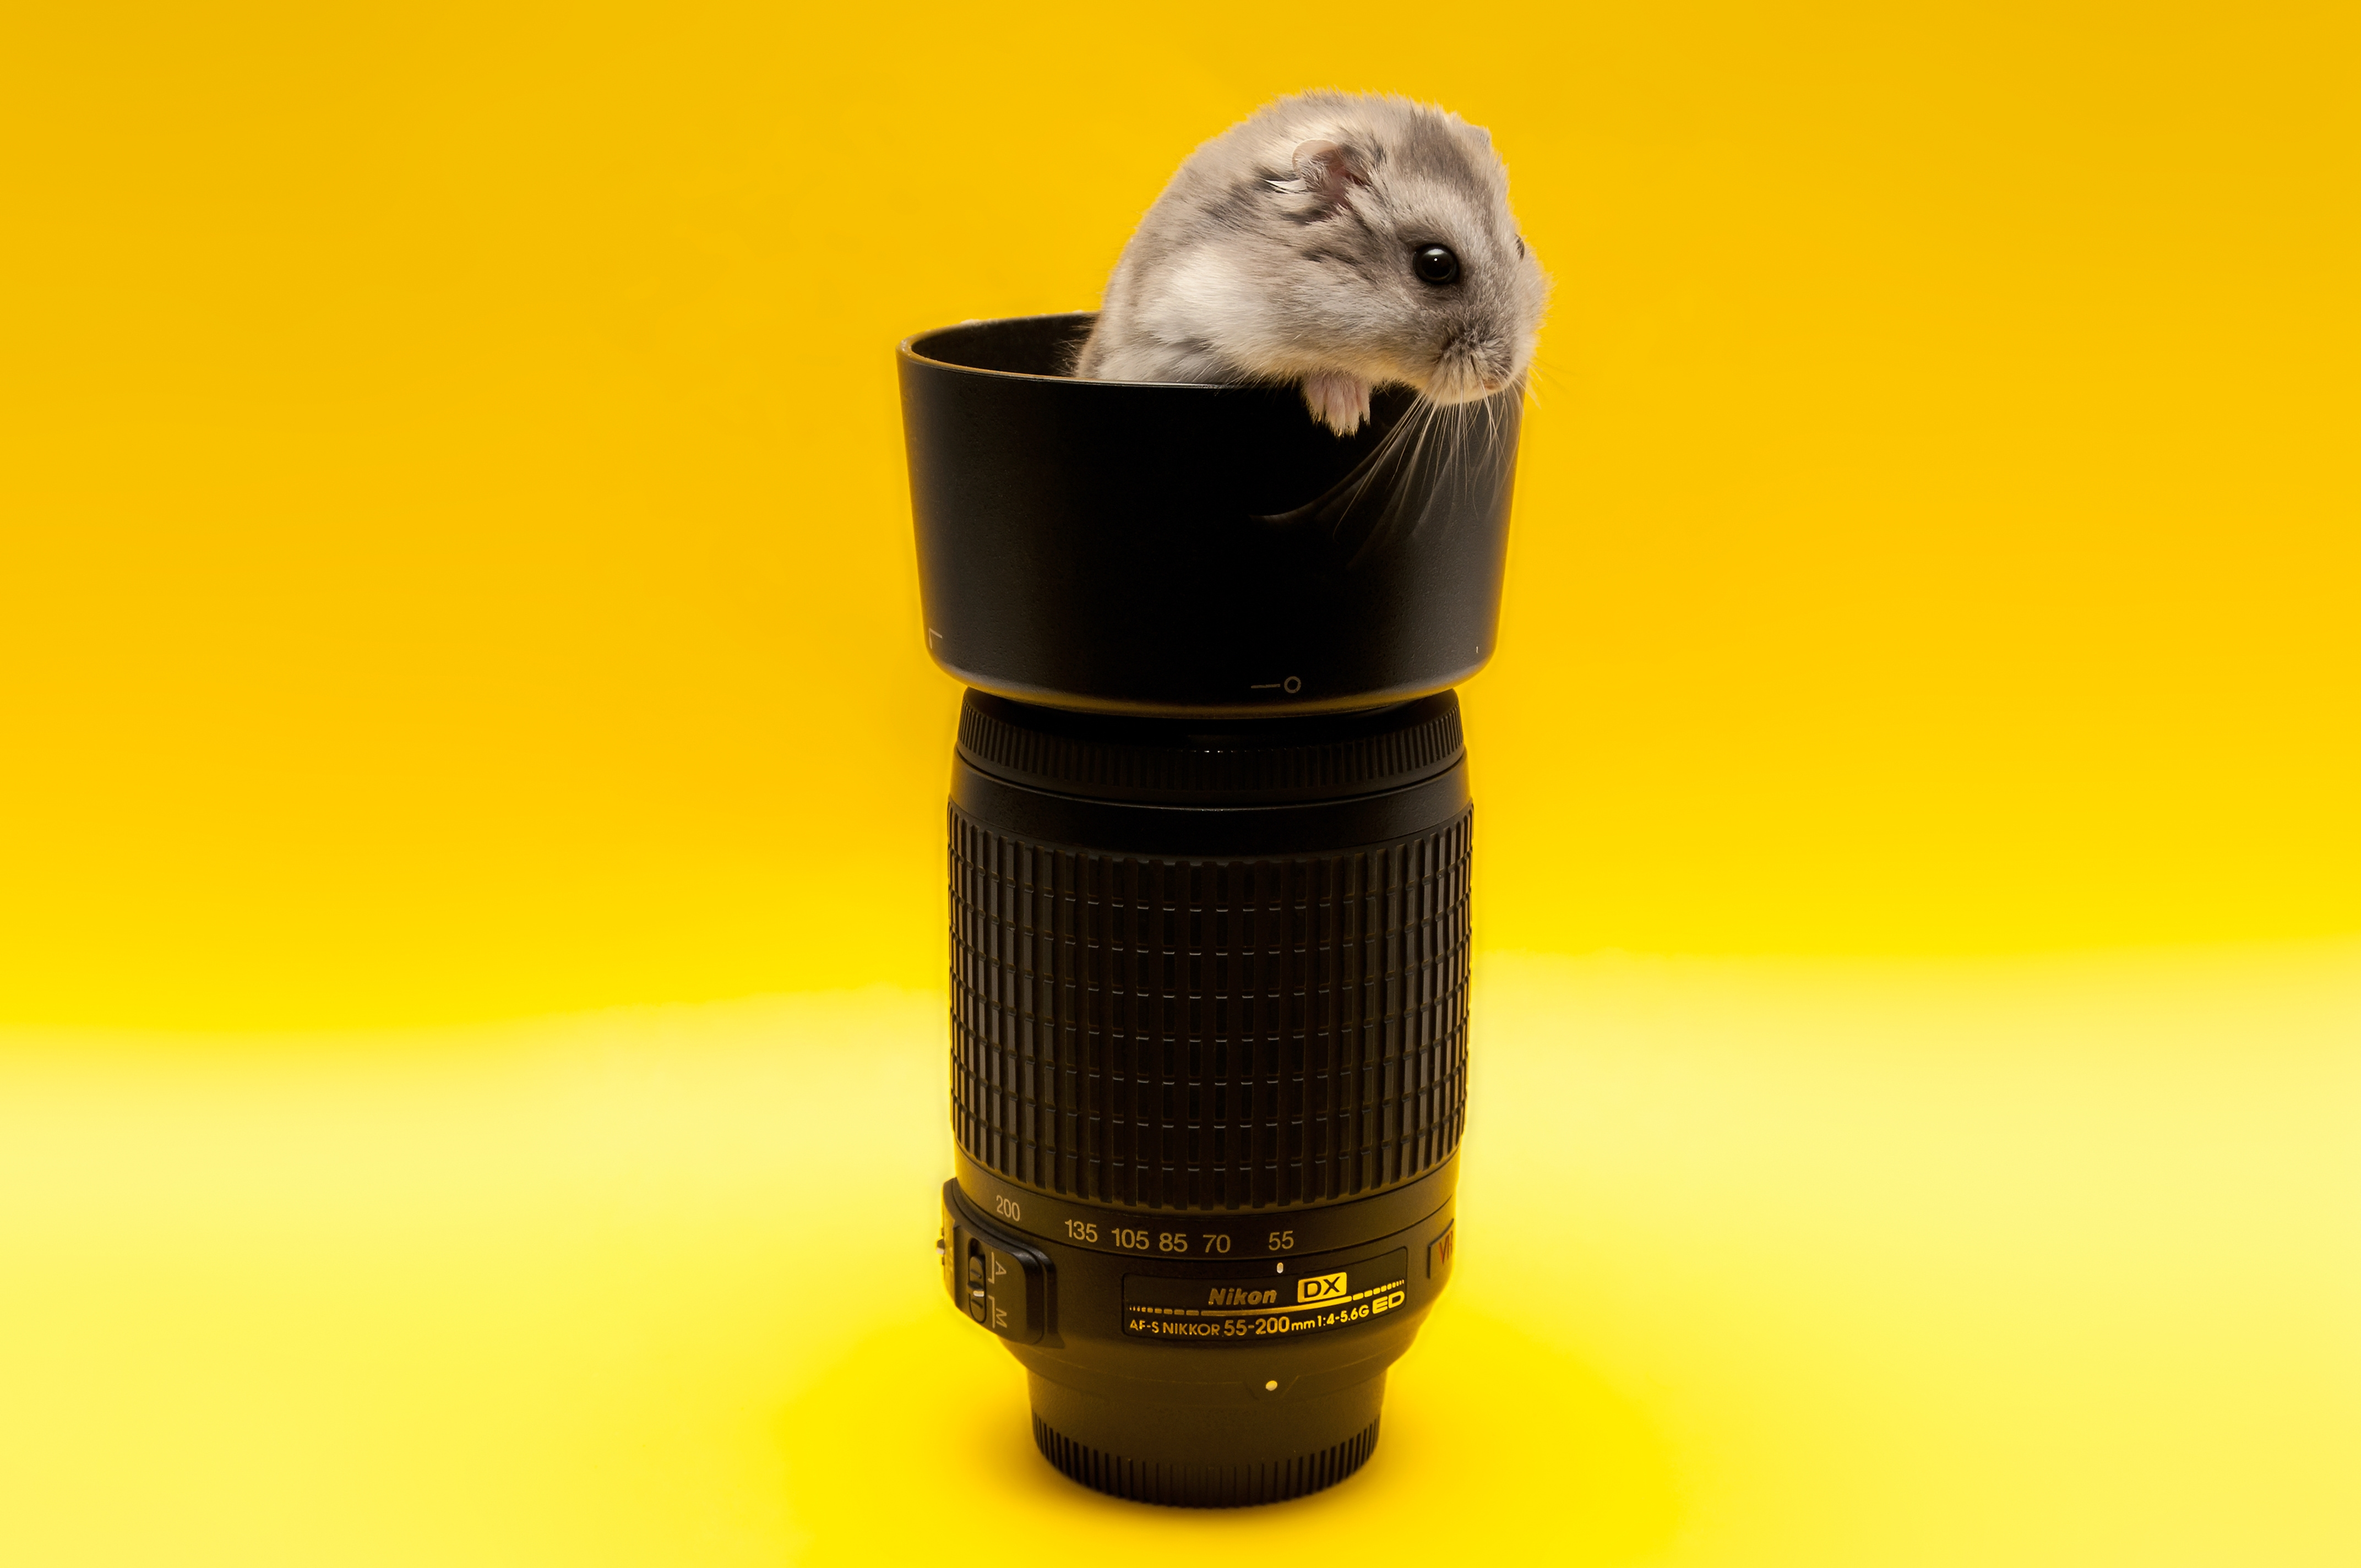 102058 download wallpaper Animals, Mouse, Lens, Climb, Rodent screensavers and pictures for free